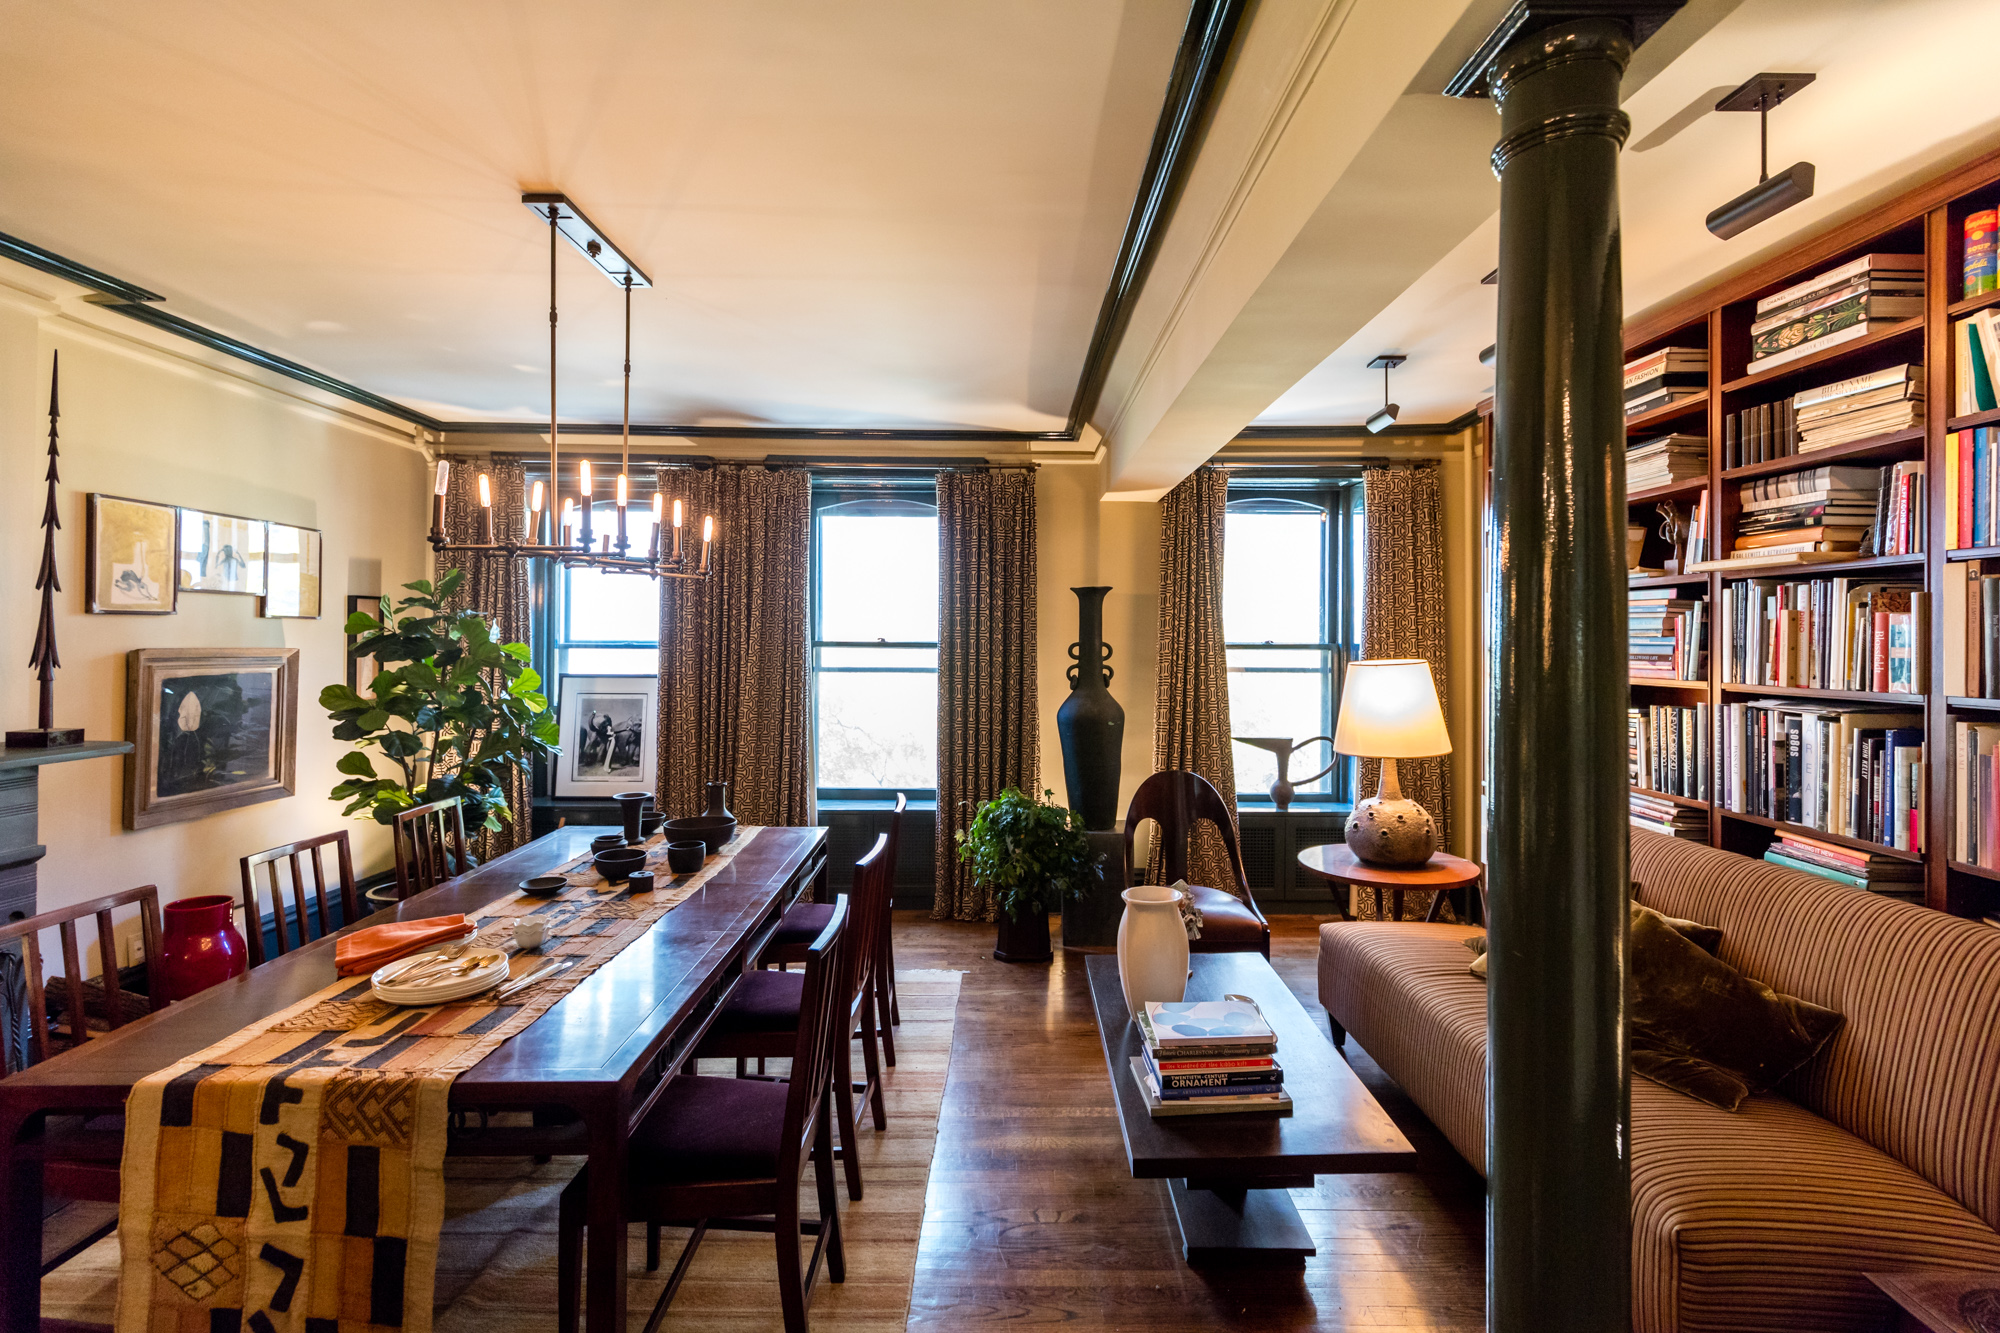 Glenn Gissler House Calls Brooklyn Heights. 7 stunning NYC dining rooms to inspire you this holiday season